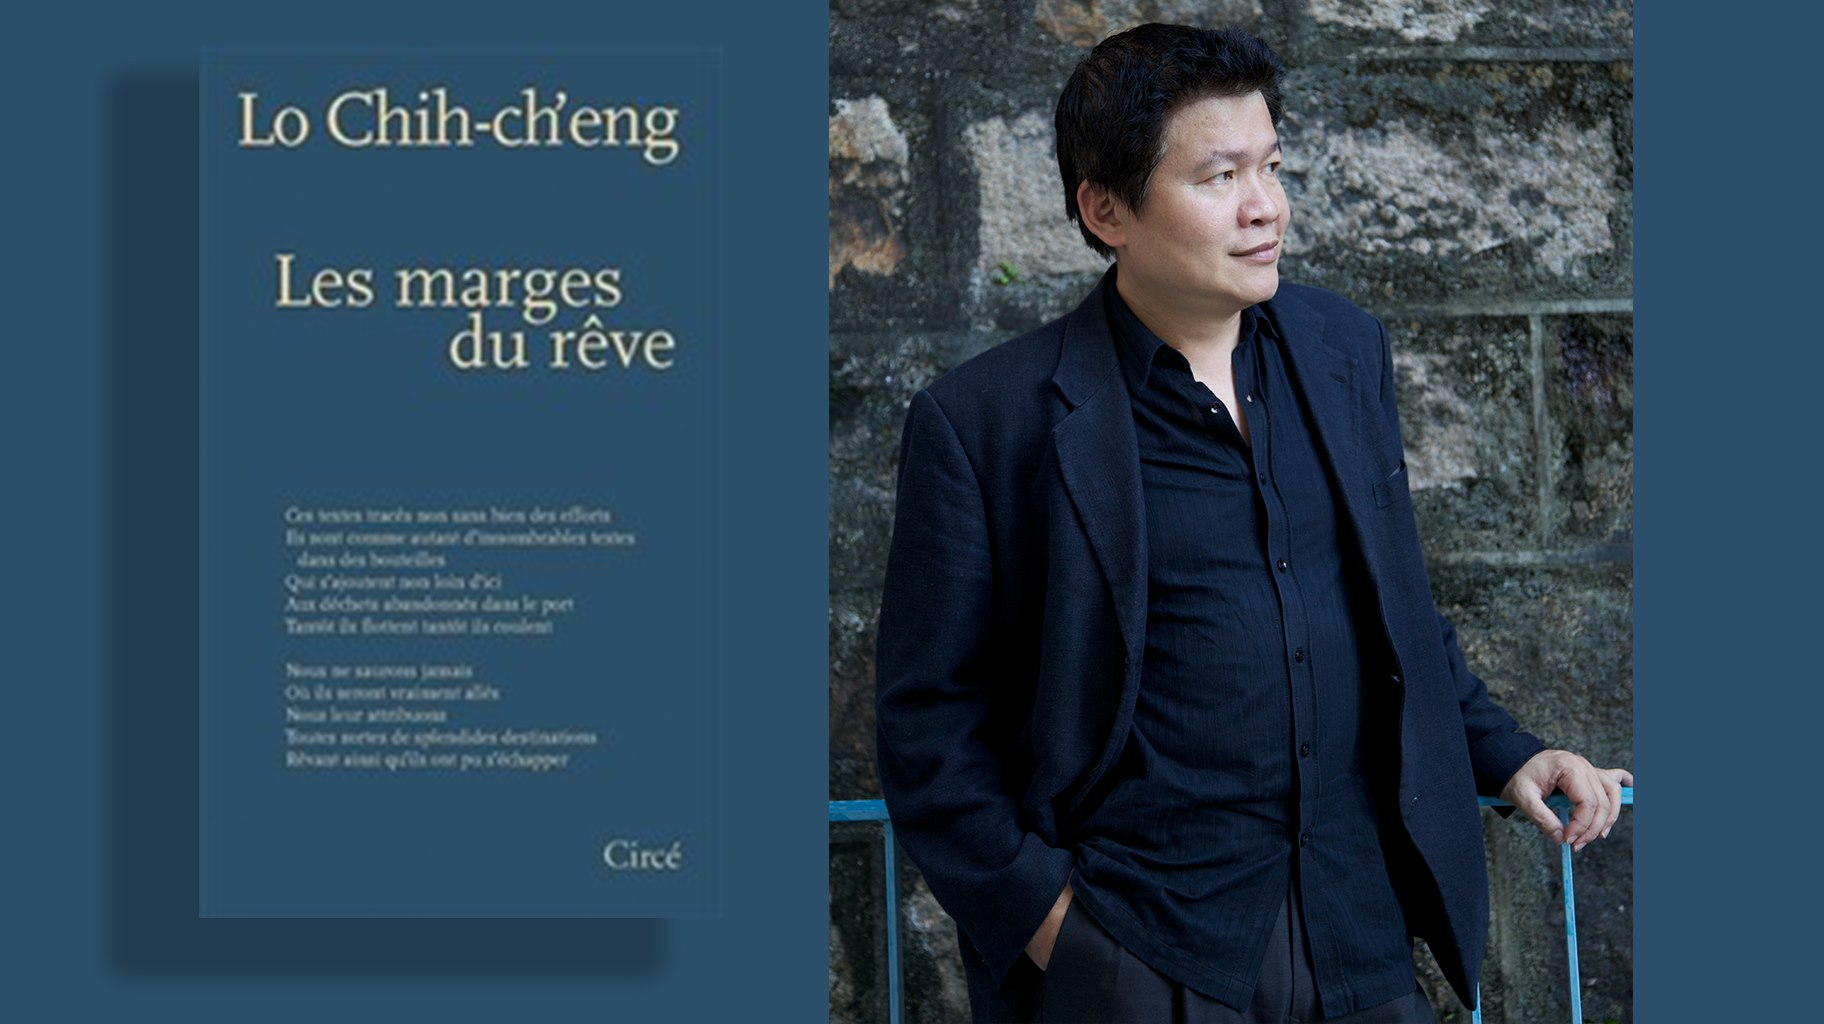 Digital programs in French spotlighting poet Lo Chih-ch'eng